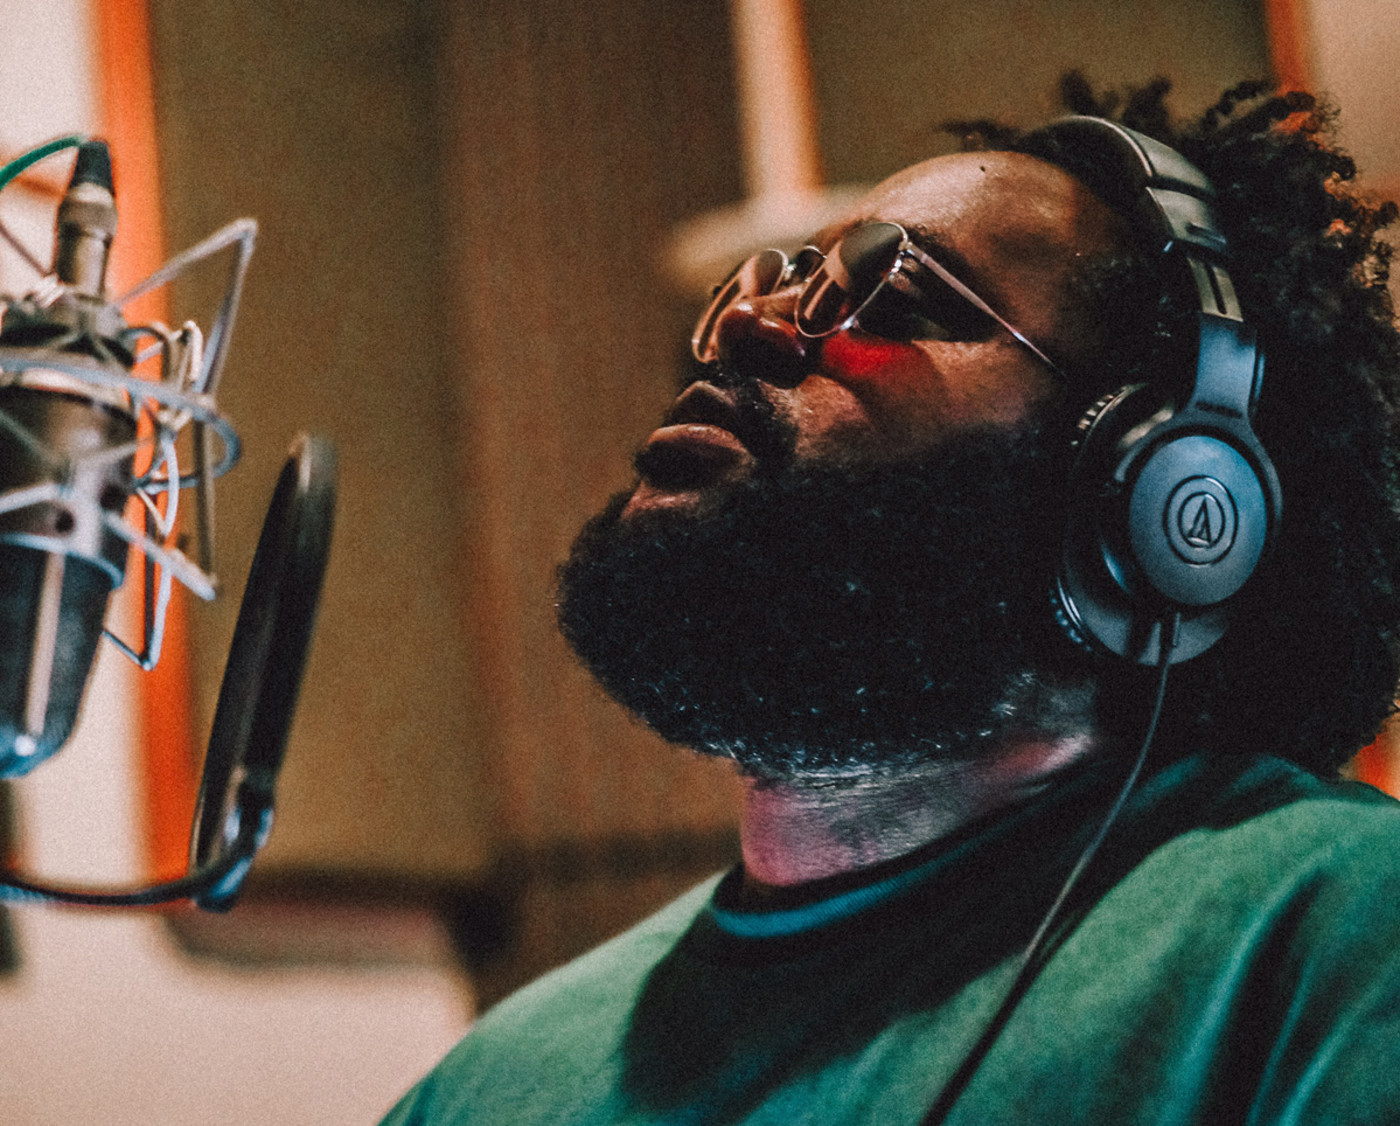 bas-rotd3-chase-fade